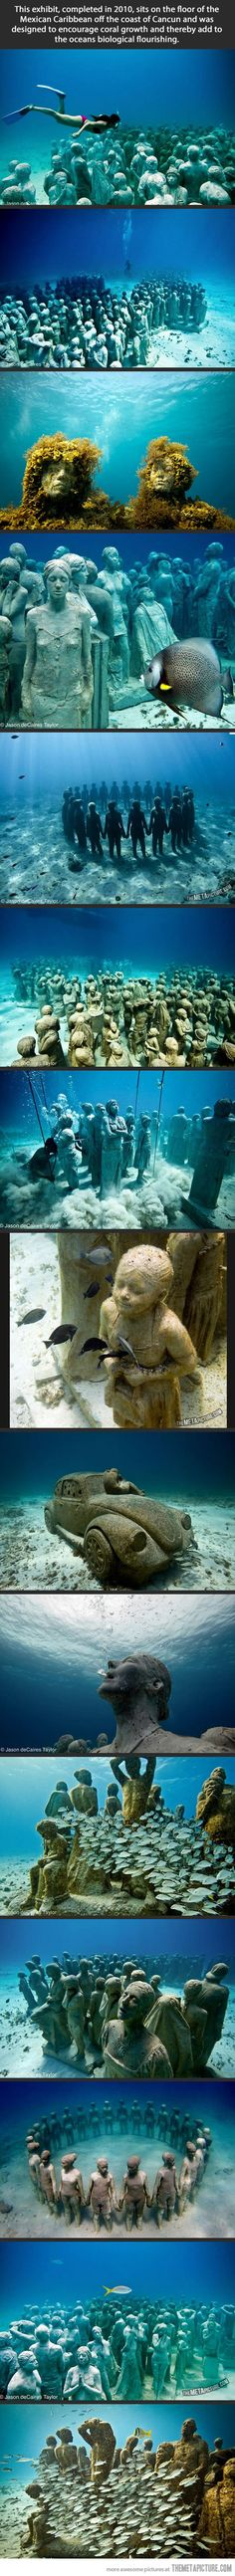 Amazing underwater museum…I saw this on Sunday Morning with Charles Corolt. It's used like a reef for the wildlife.